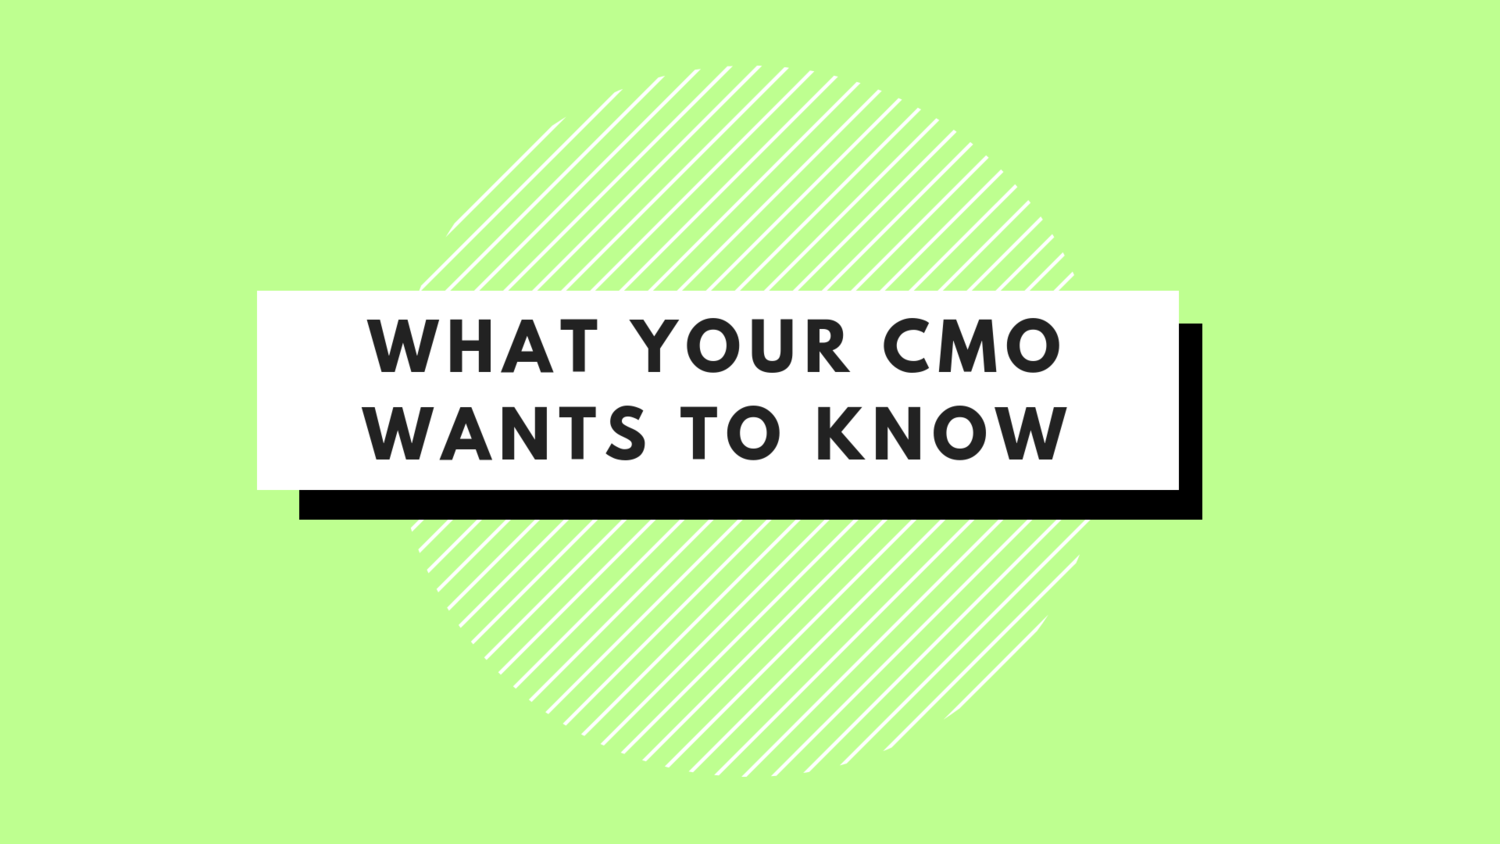 What Your CMO Wants to Know